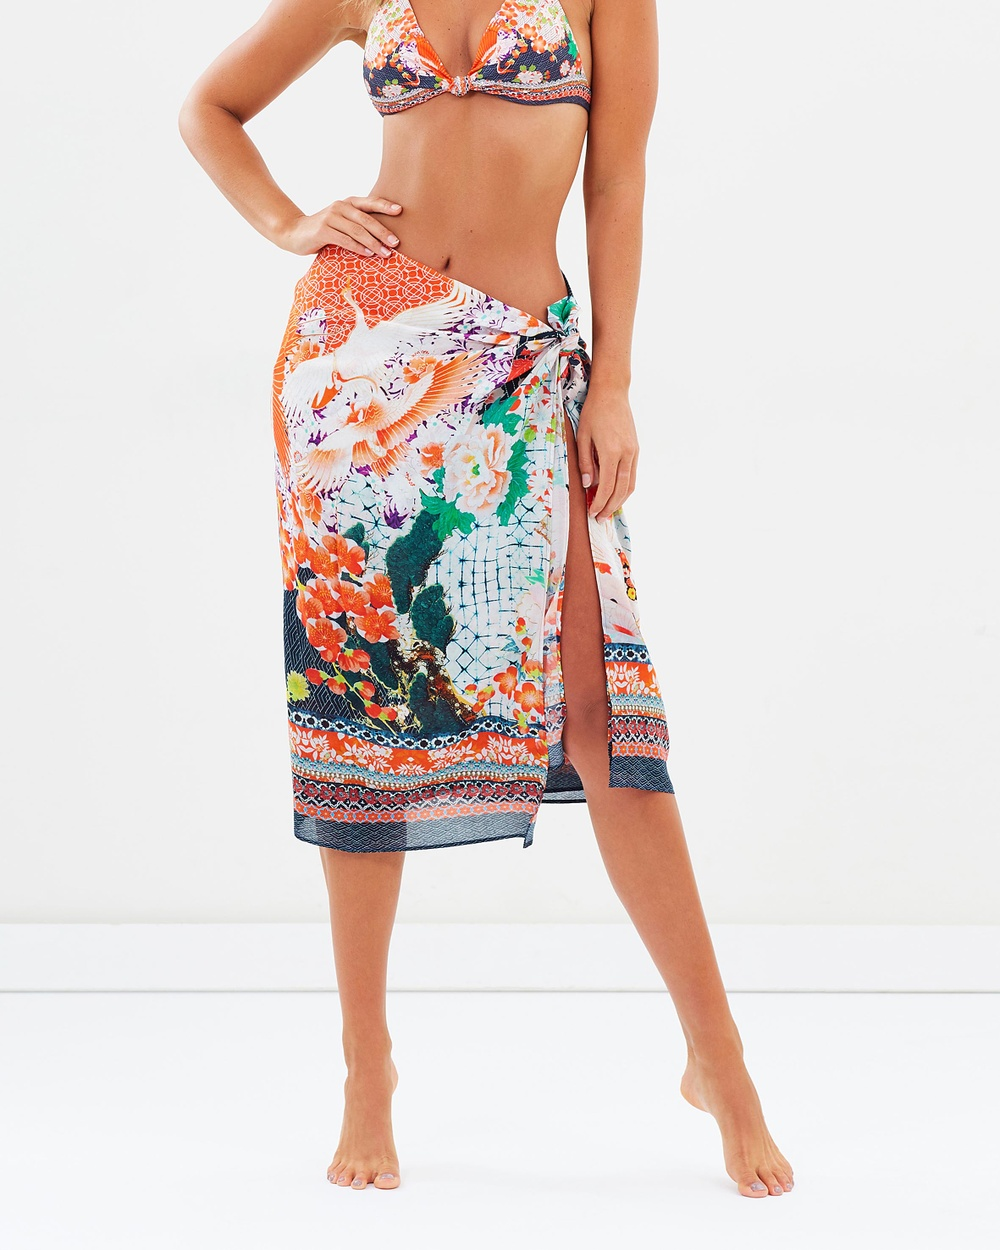 Camilla Frayed Edge Long Sarong Swimwear Geisha Girl Frayed Edge Long Sarong